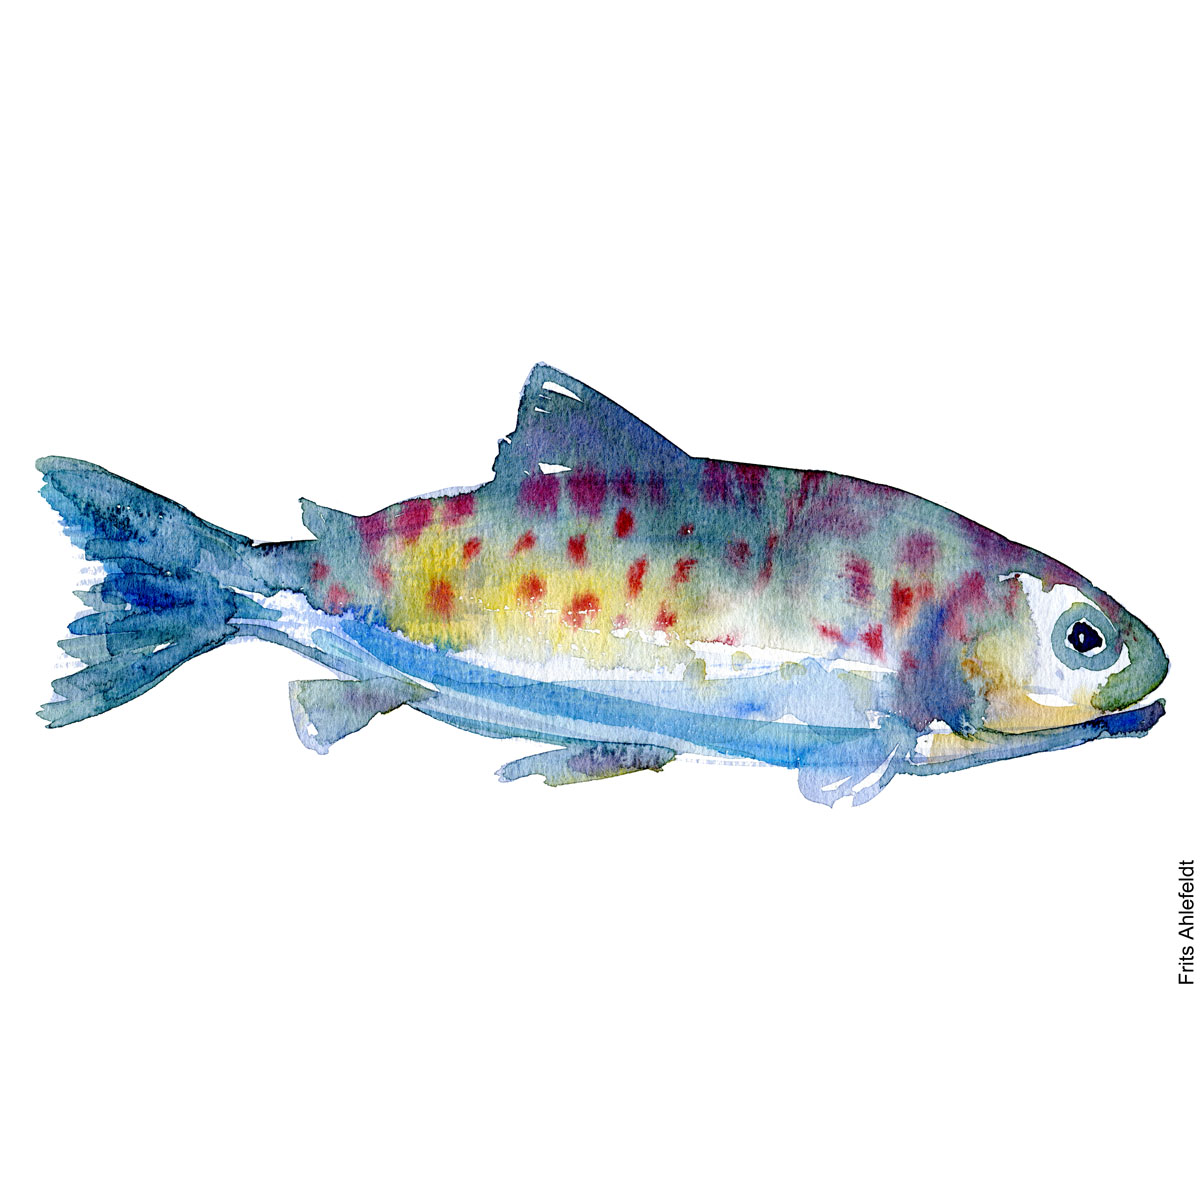 Trout, red dots, Watercolour, Freshwater fish illustration by Frits Ahlefeldt